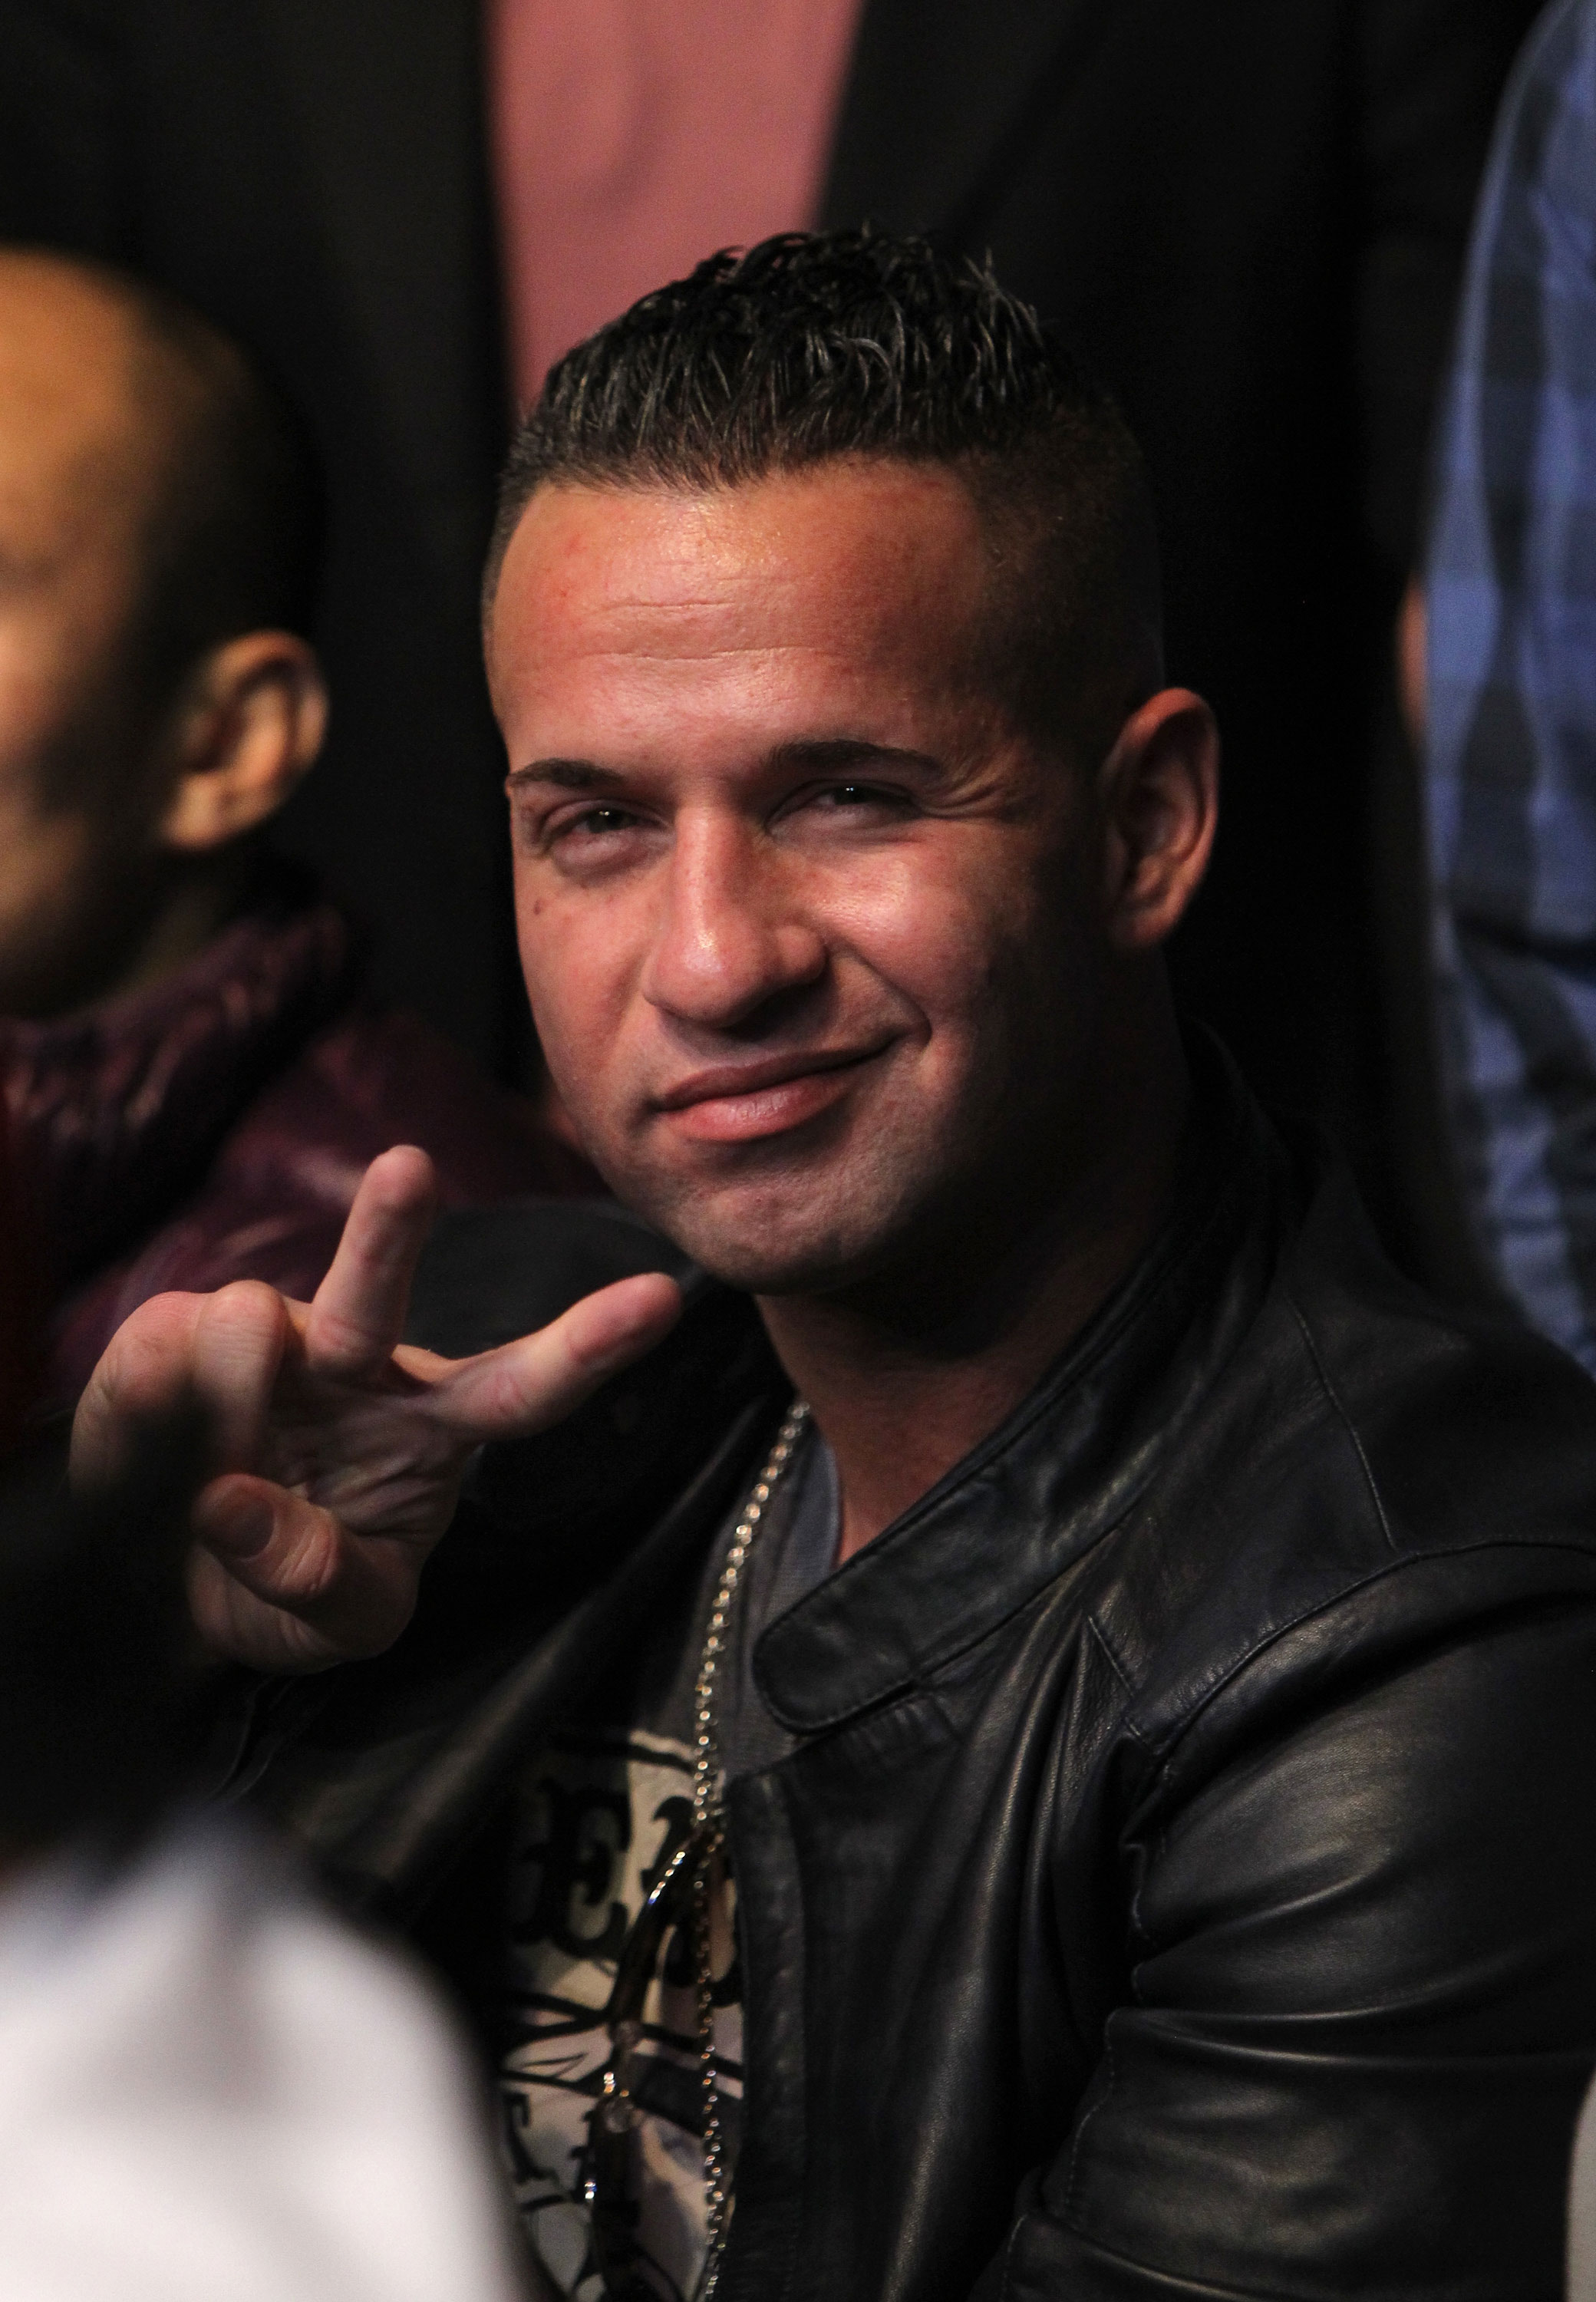 "LAS VEGAS, NV - DECEMBER 30:  Mike ""The Situation"" Sorrentino during the UFC 141 event at the MGM Grand Garden Arena on December 30, 2011 in Las Vegas, Nevada.  (Photo by Josh Hedges/Zuffa LLC/Zuffa LLC via Getty Images) *** Local Caption *** Mike Sorrentino"